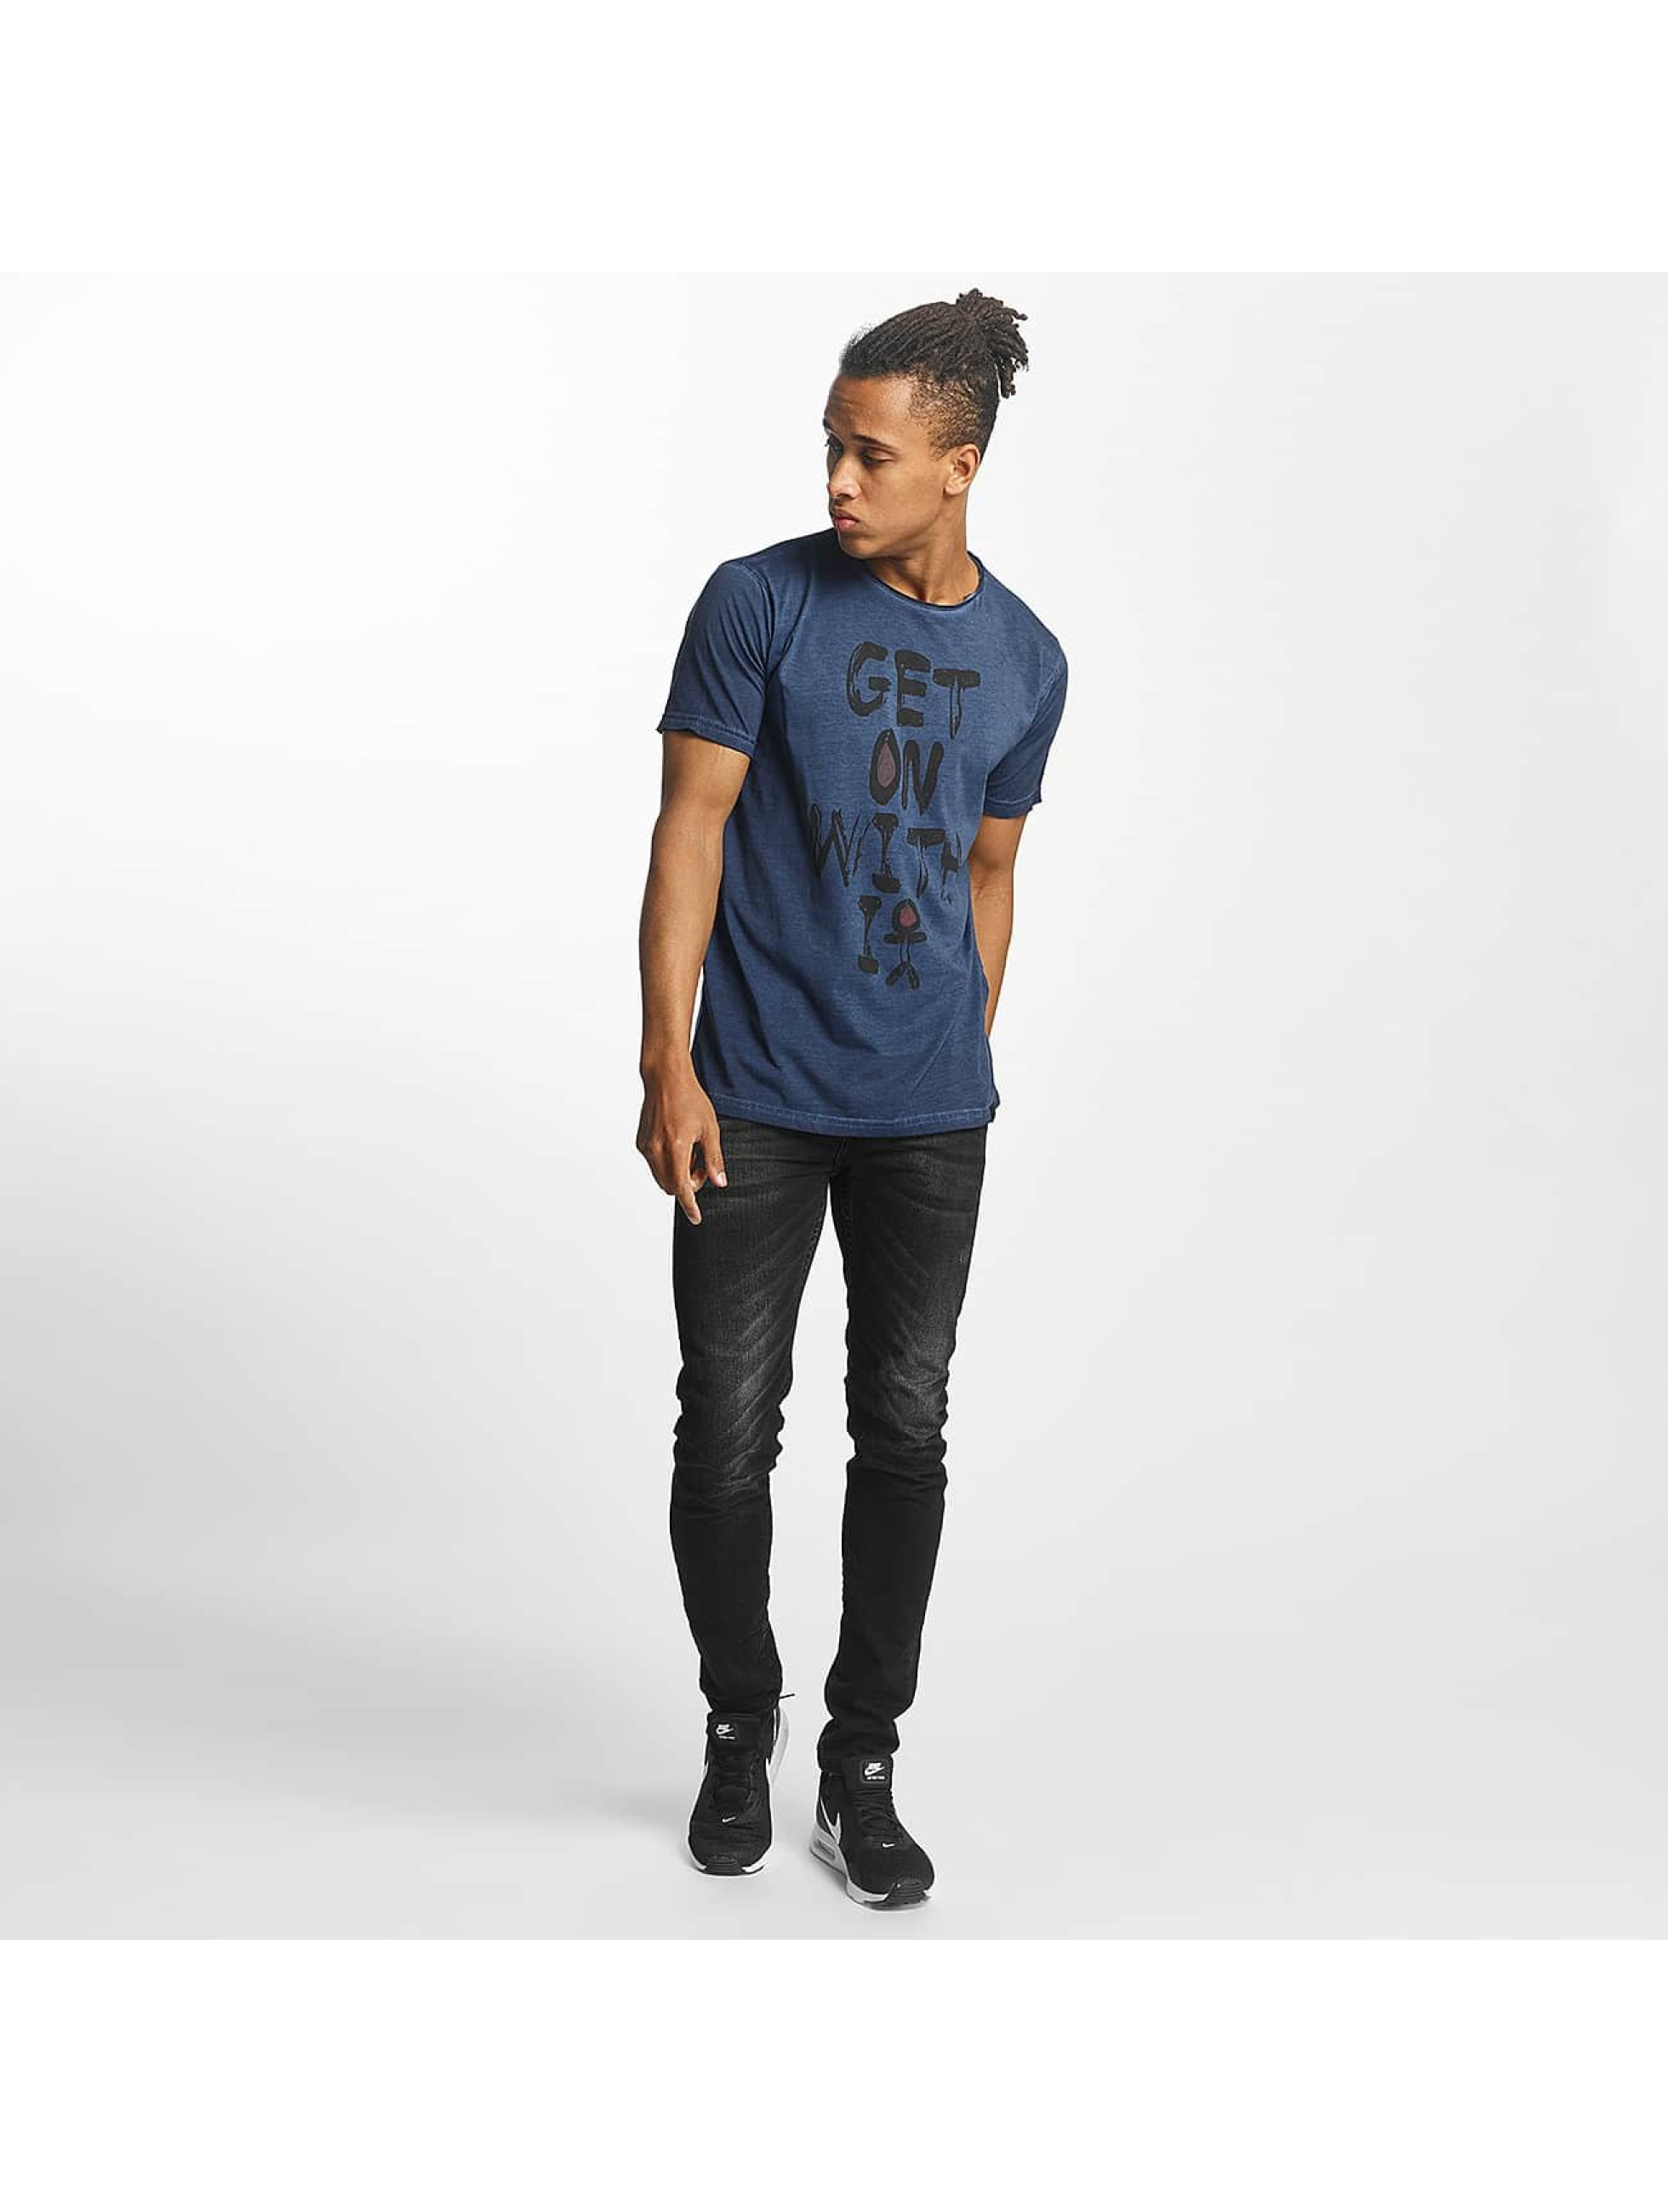 Paris Premium T-Shirty Get on with it niebieski